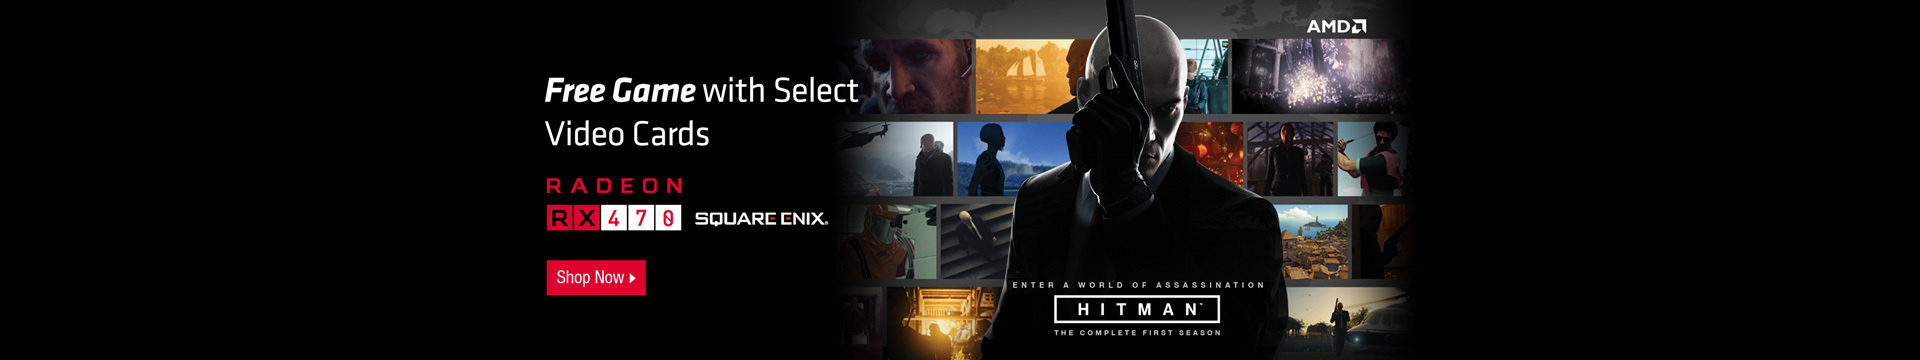 Free Game with Select Video Cards